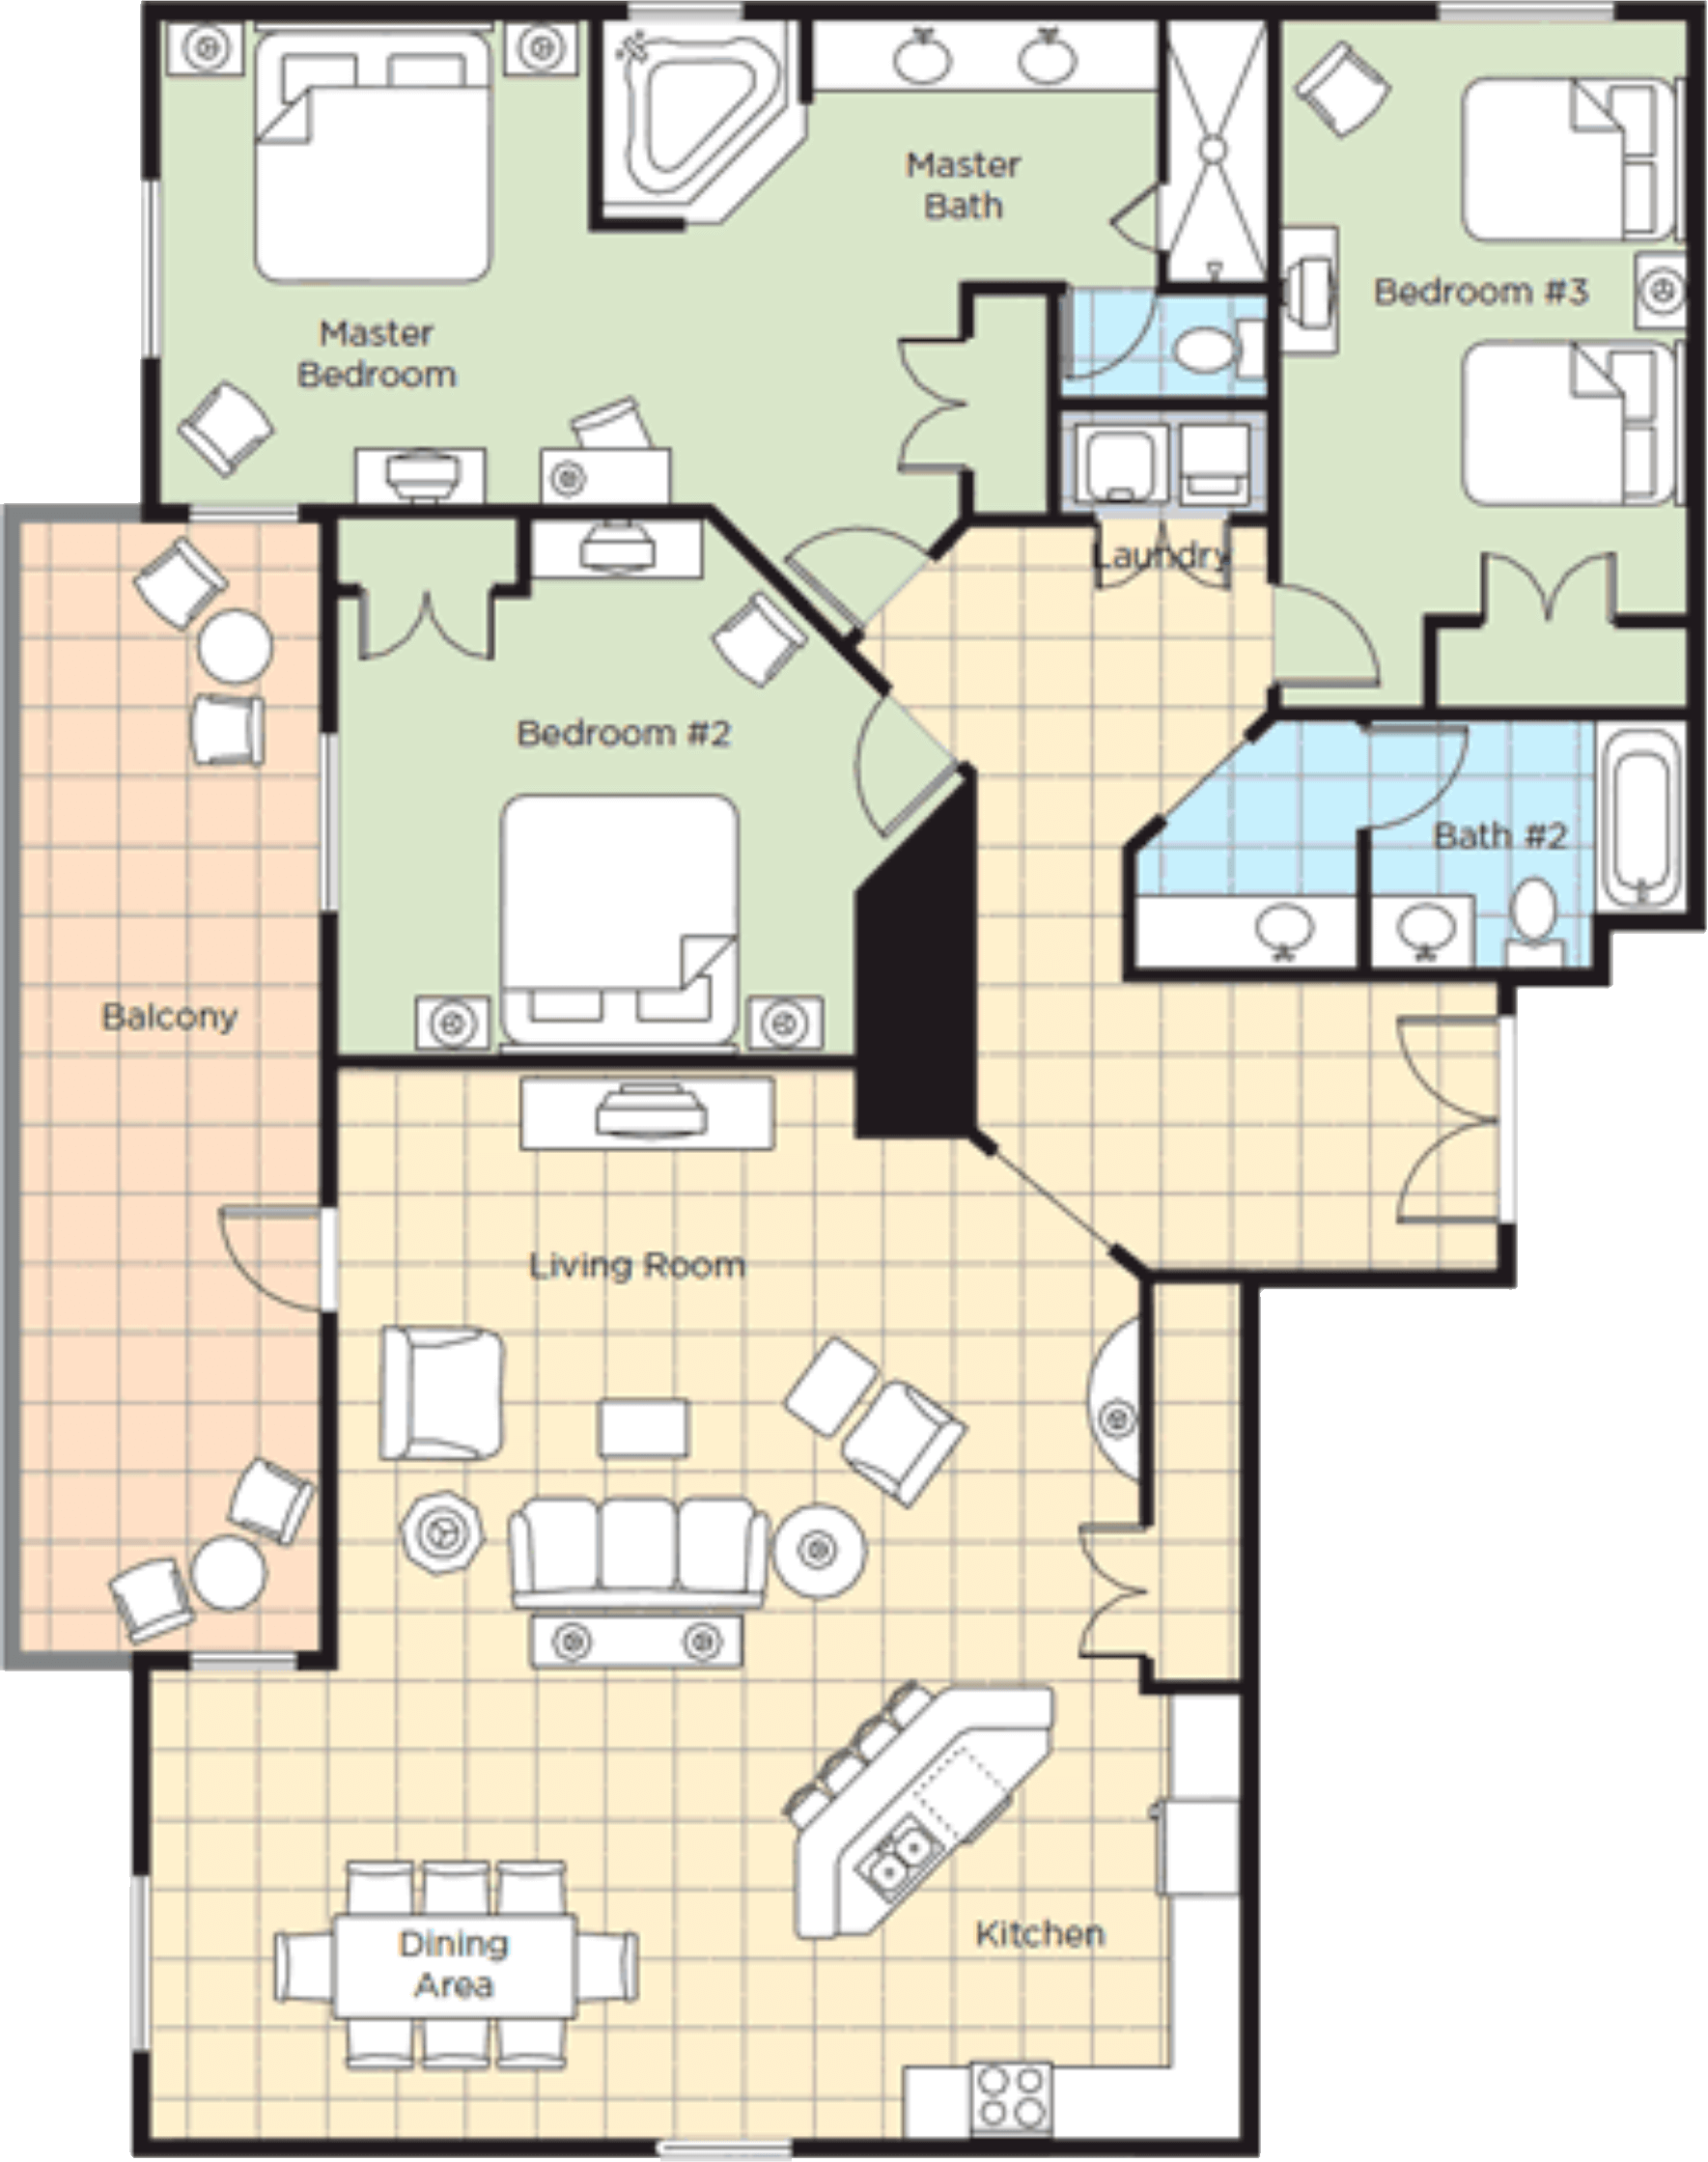 Image of floorplan for Three Bedroom Presidential